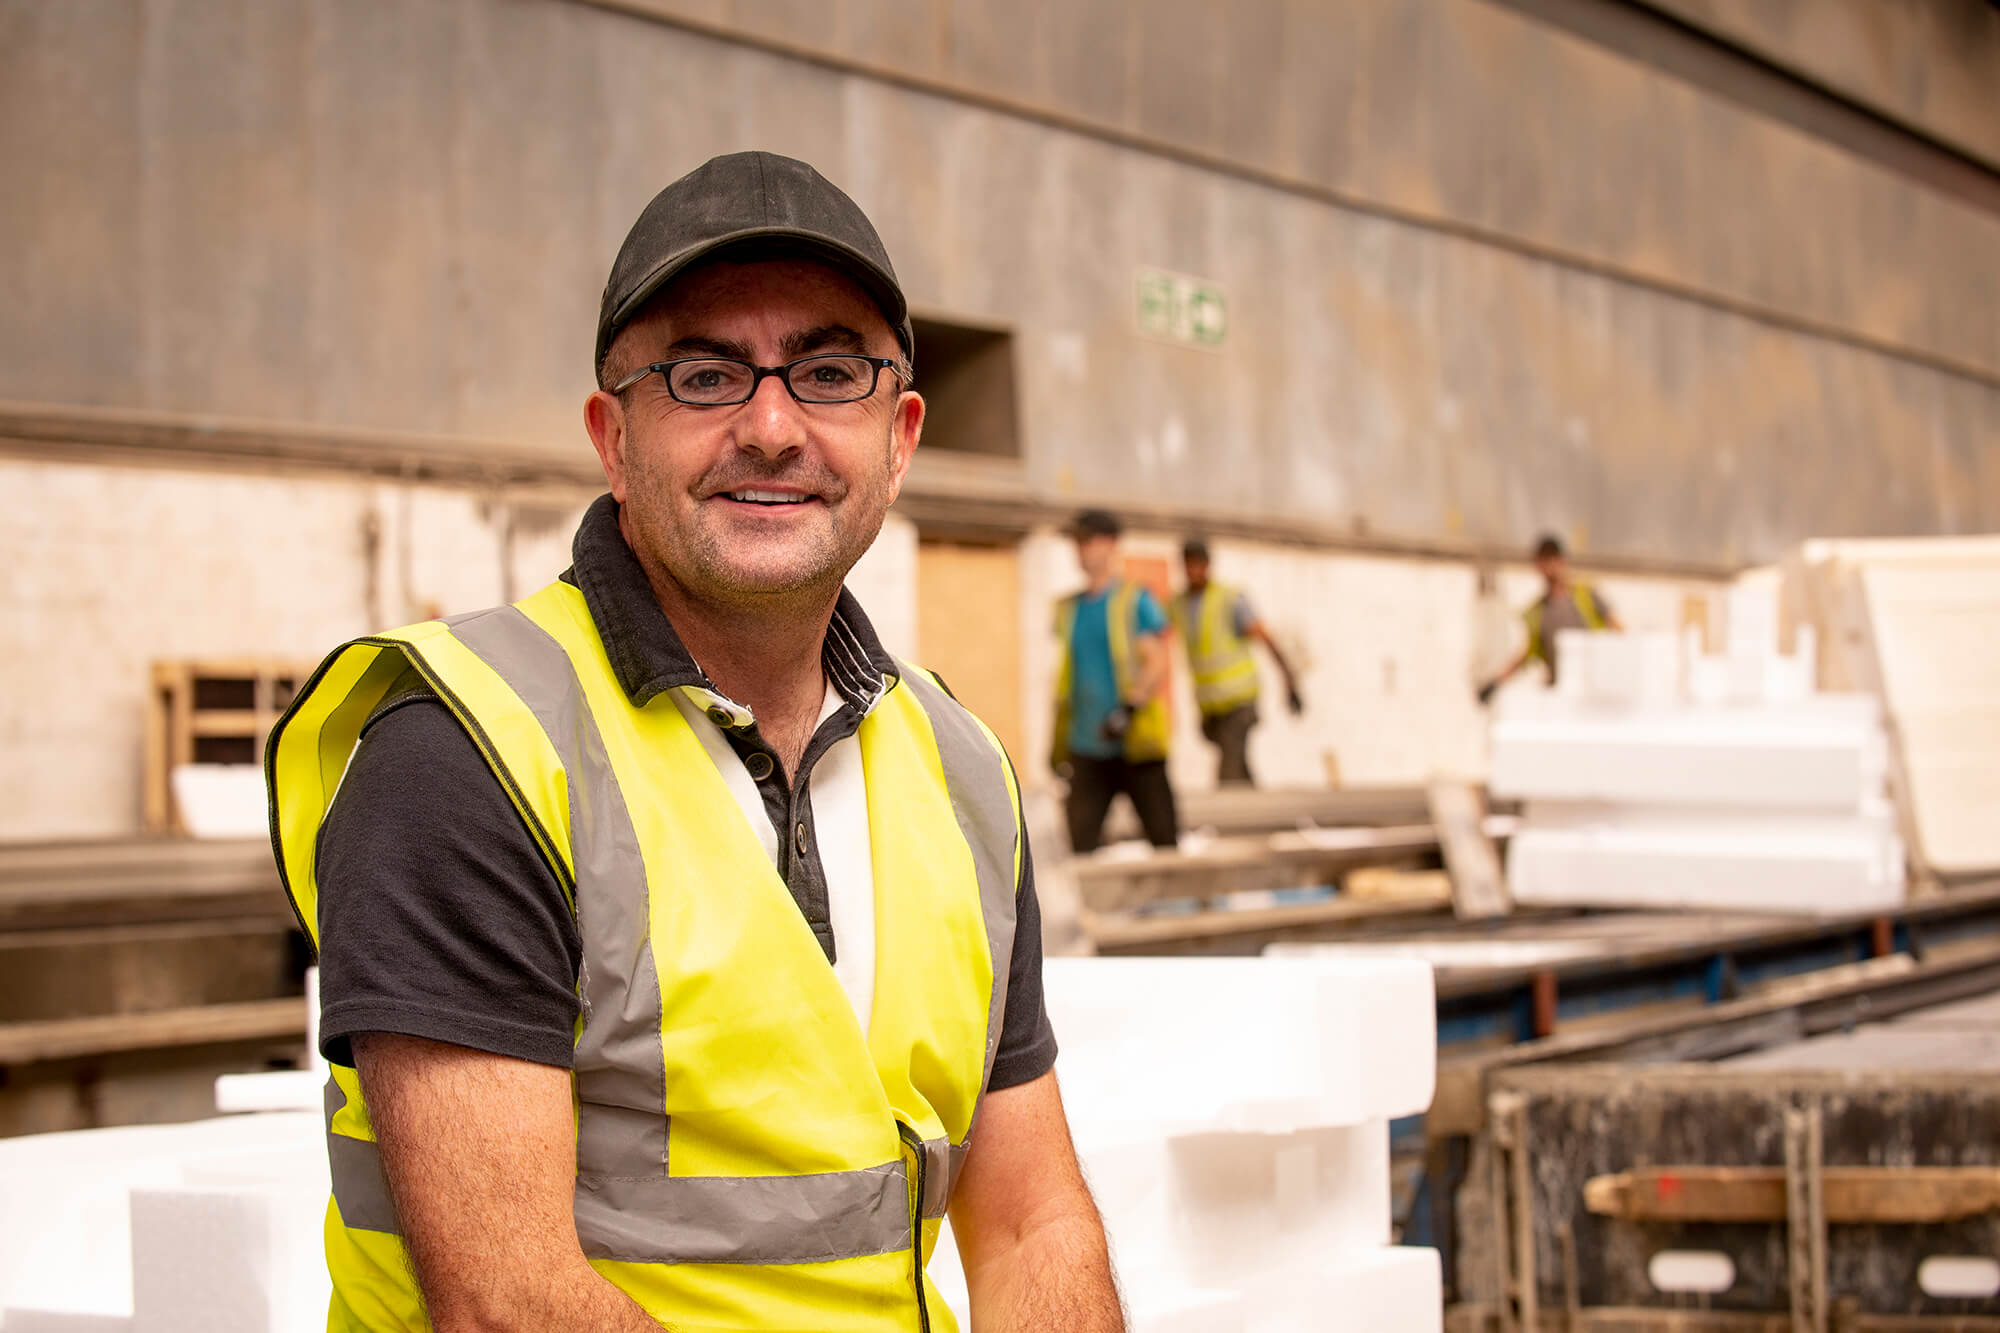 A man in a high viz smiles at the camera in an indoor construction site